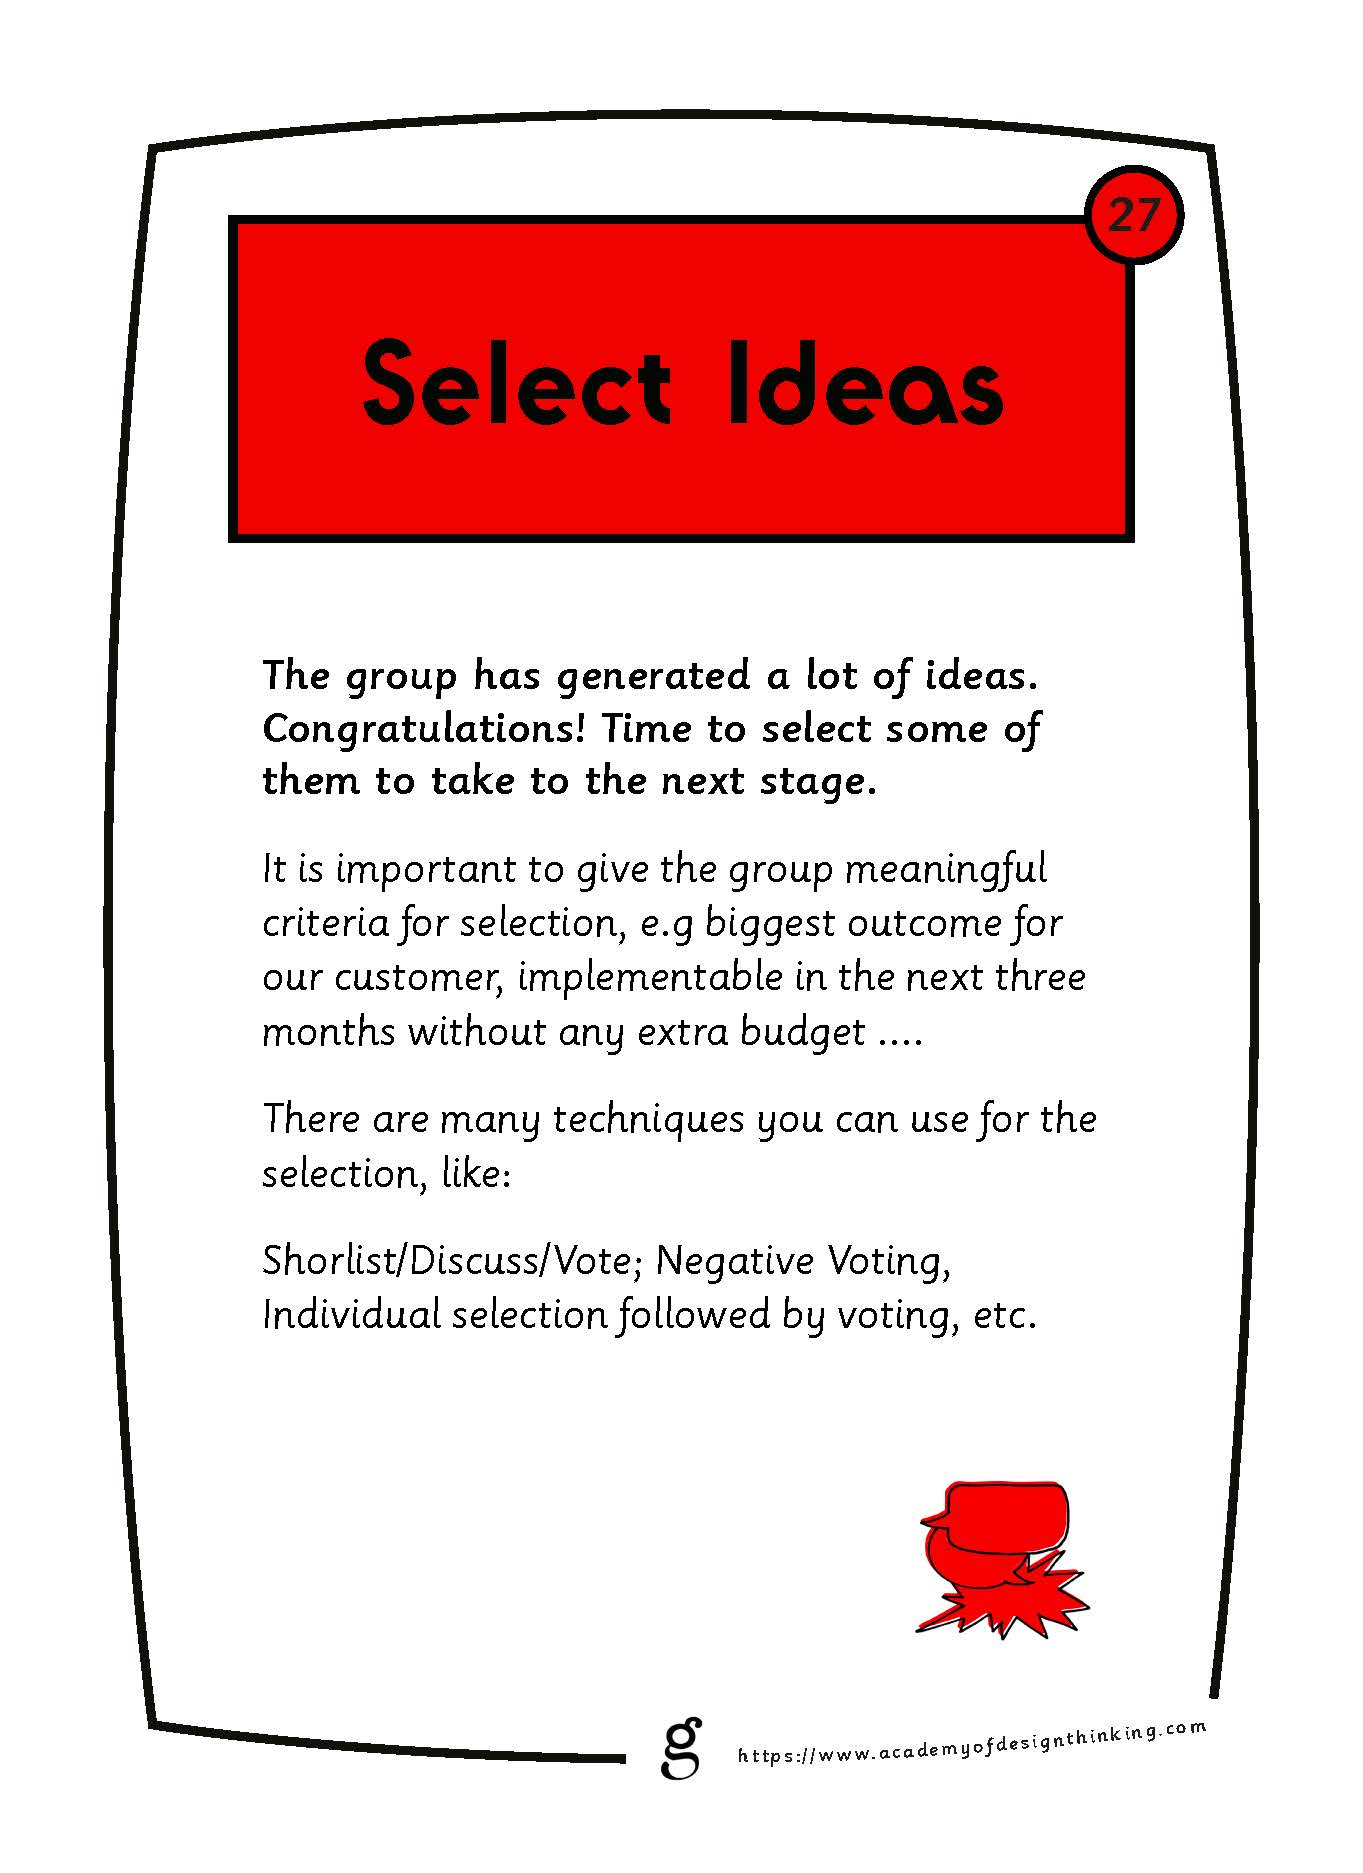 Select Ideas